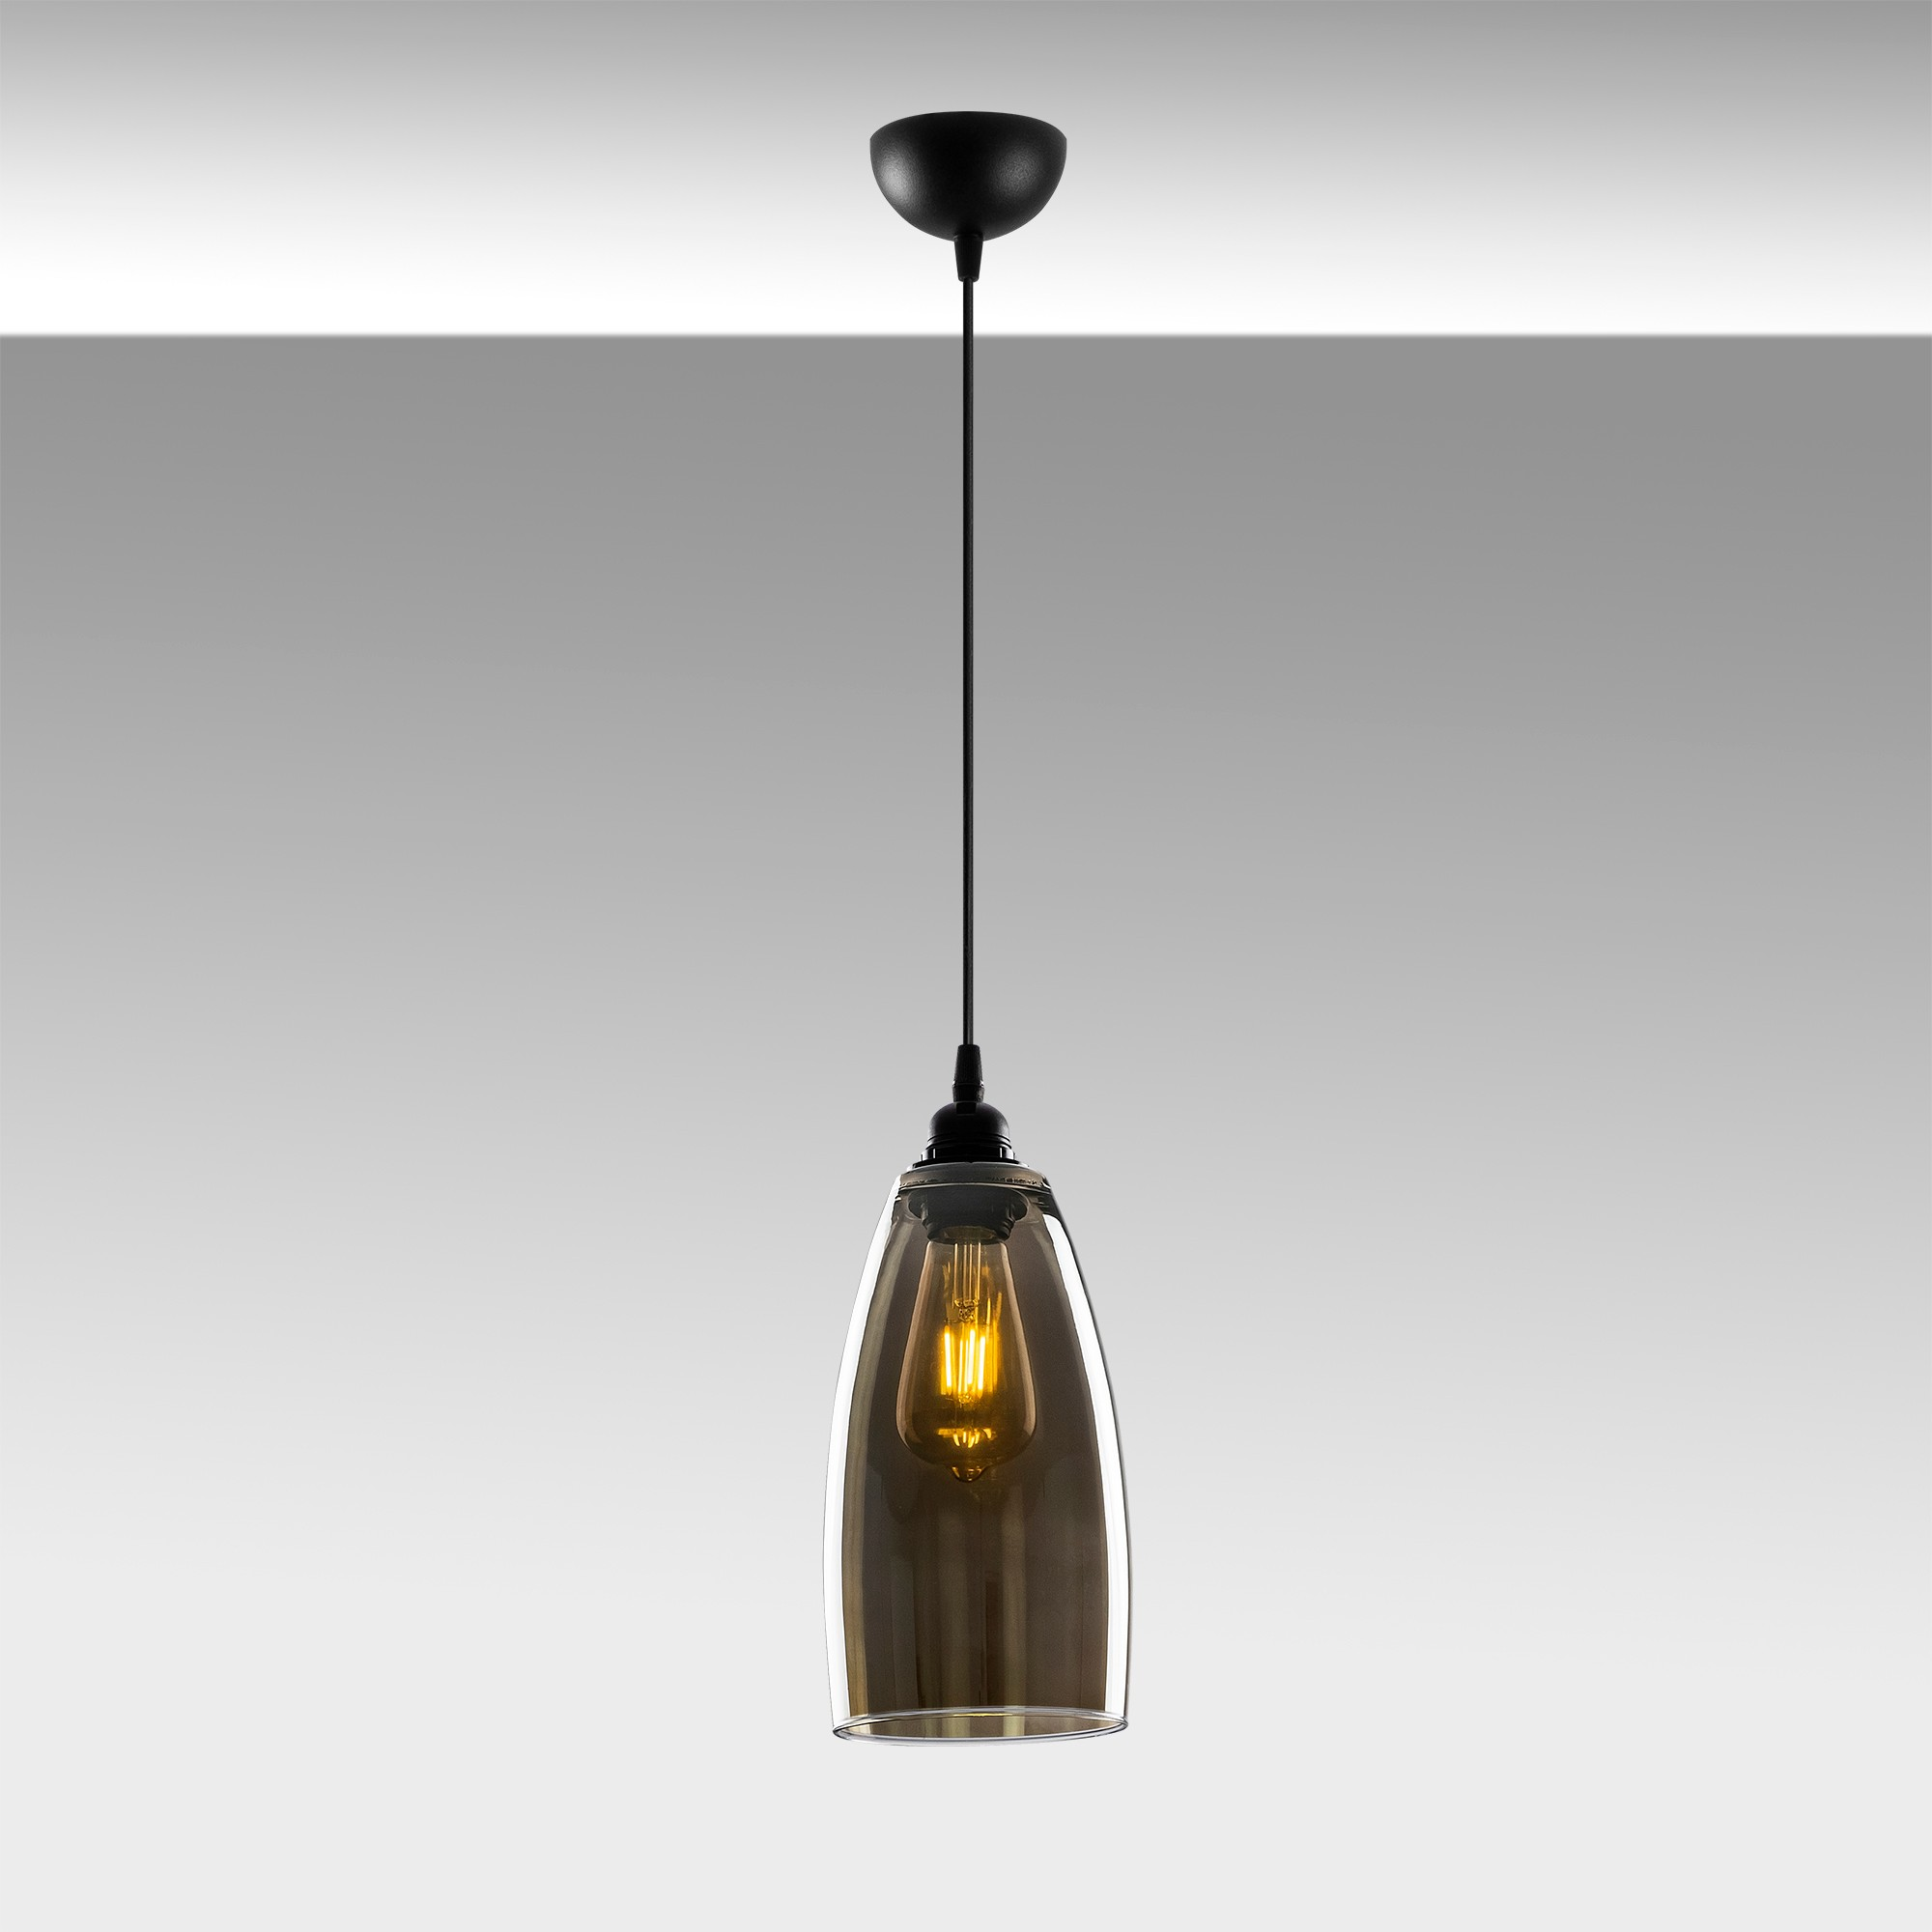 Hanglamp glad smoked glass langwerpig 1 x E27 fitting - sfeerfoto